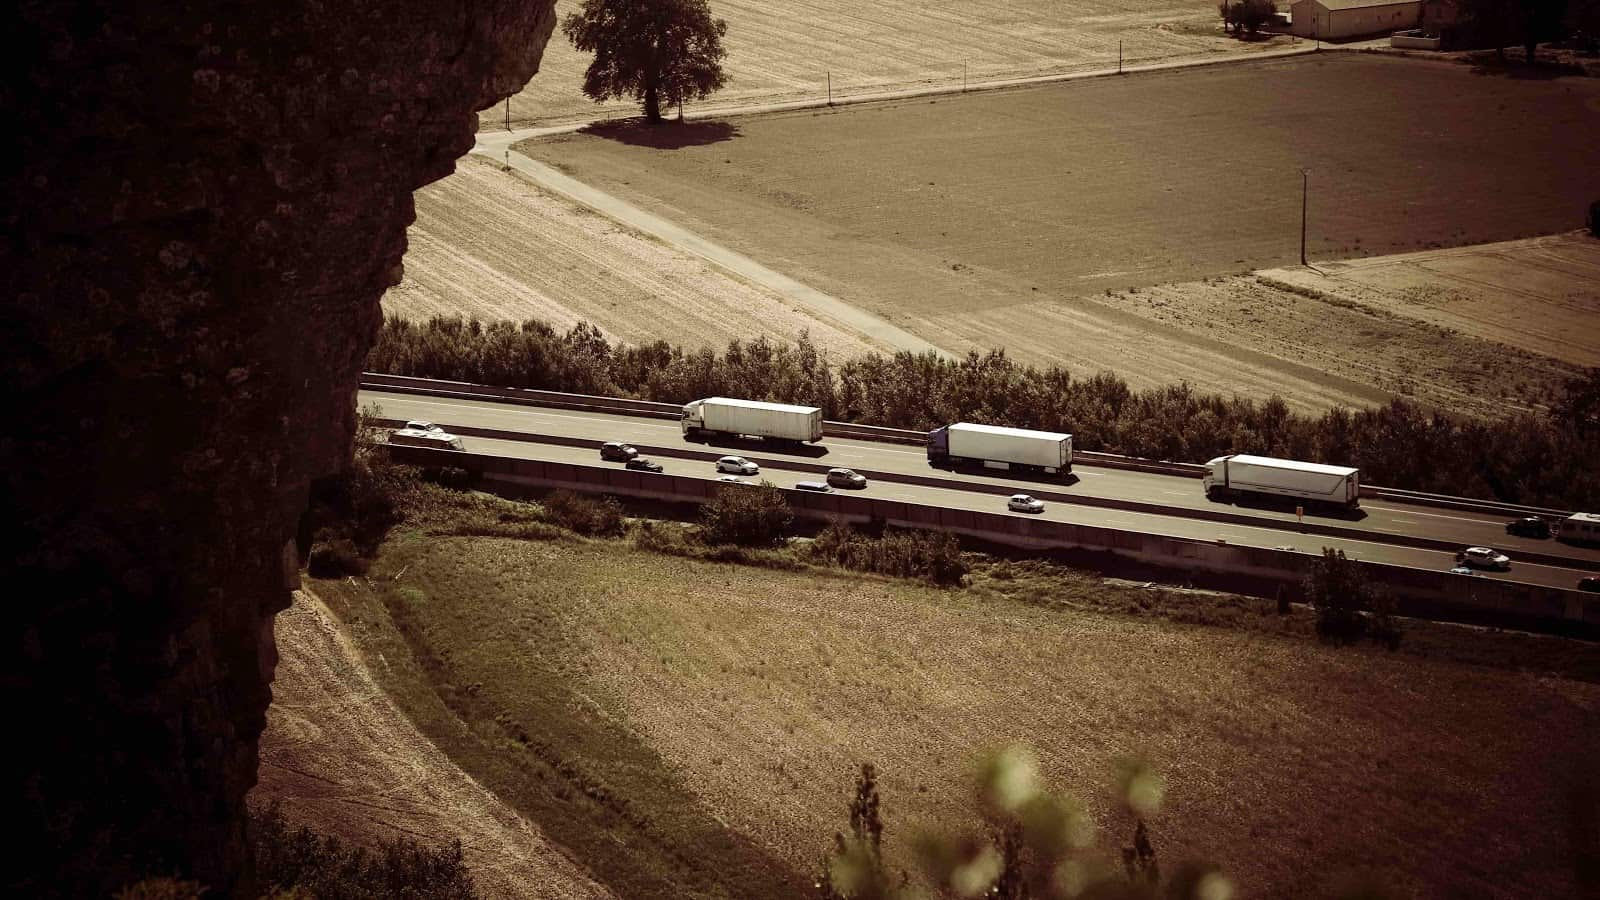 trucks on a highway